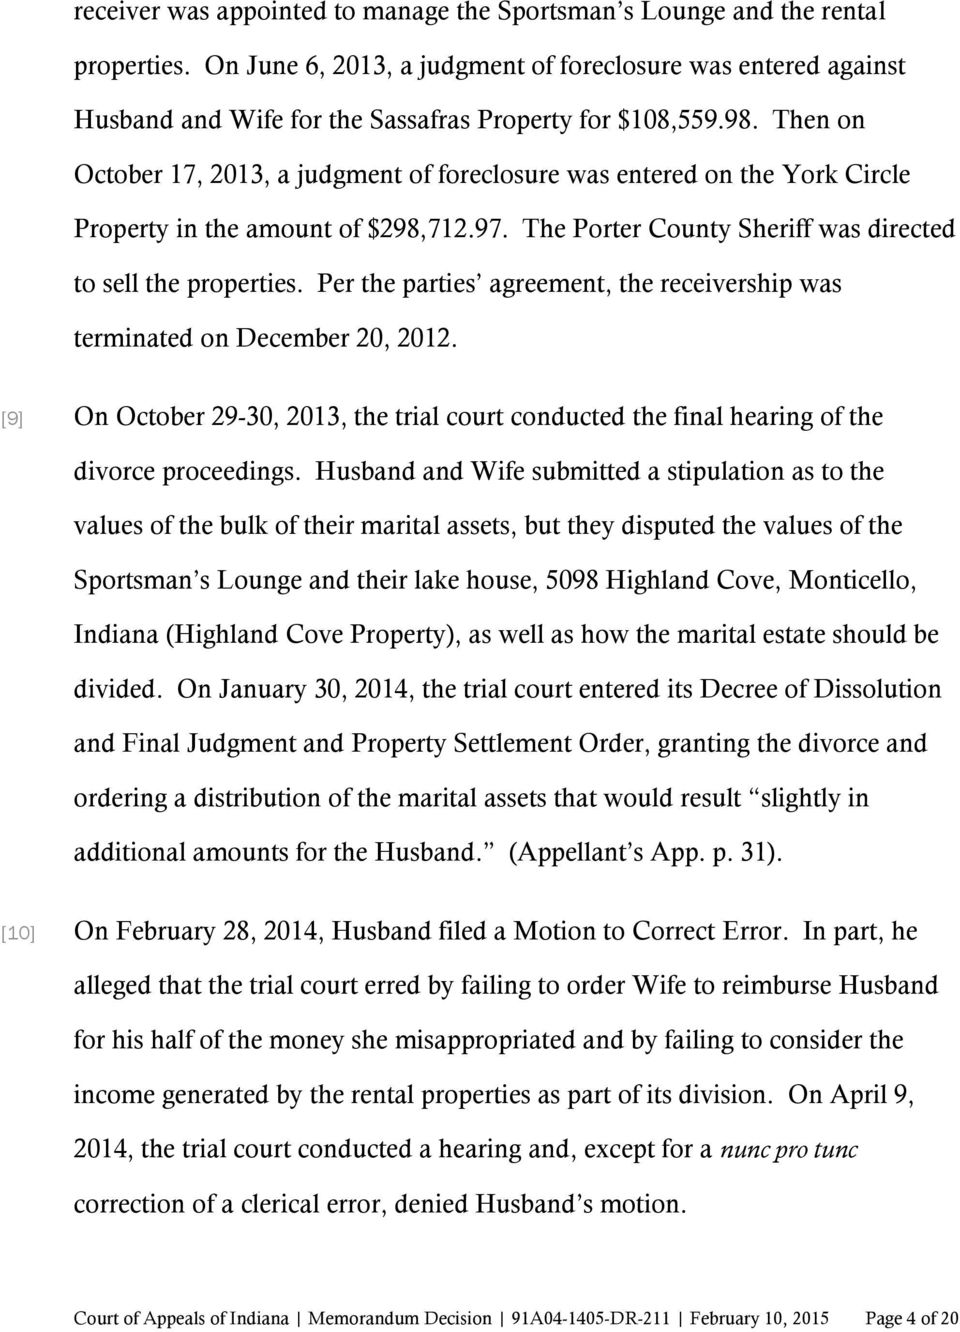 Then on October 17, 2013, a judgment of foreclosure was entered on the York Circle Property in the amount of $298,712.97. The Porter County Sheriff was directed to sell the properties.